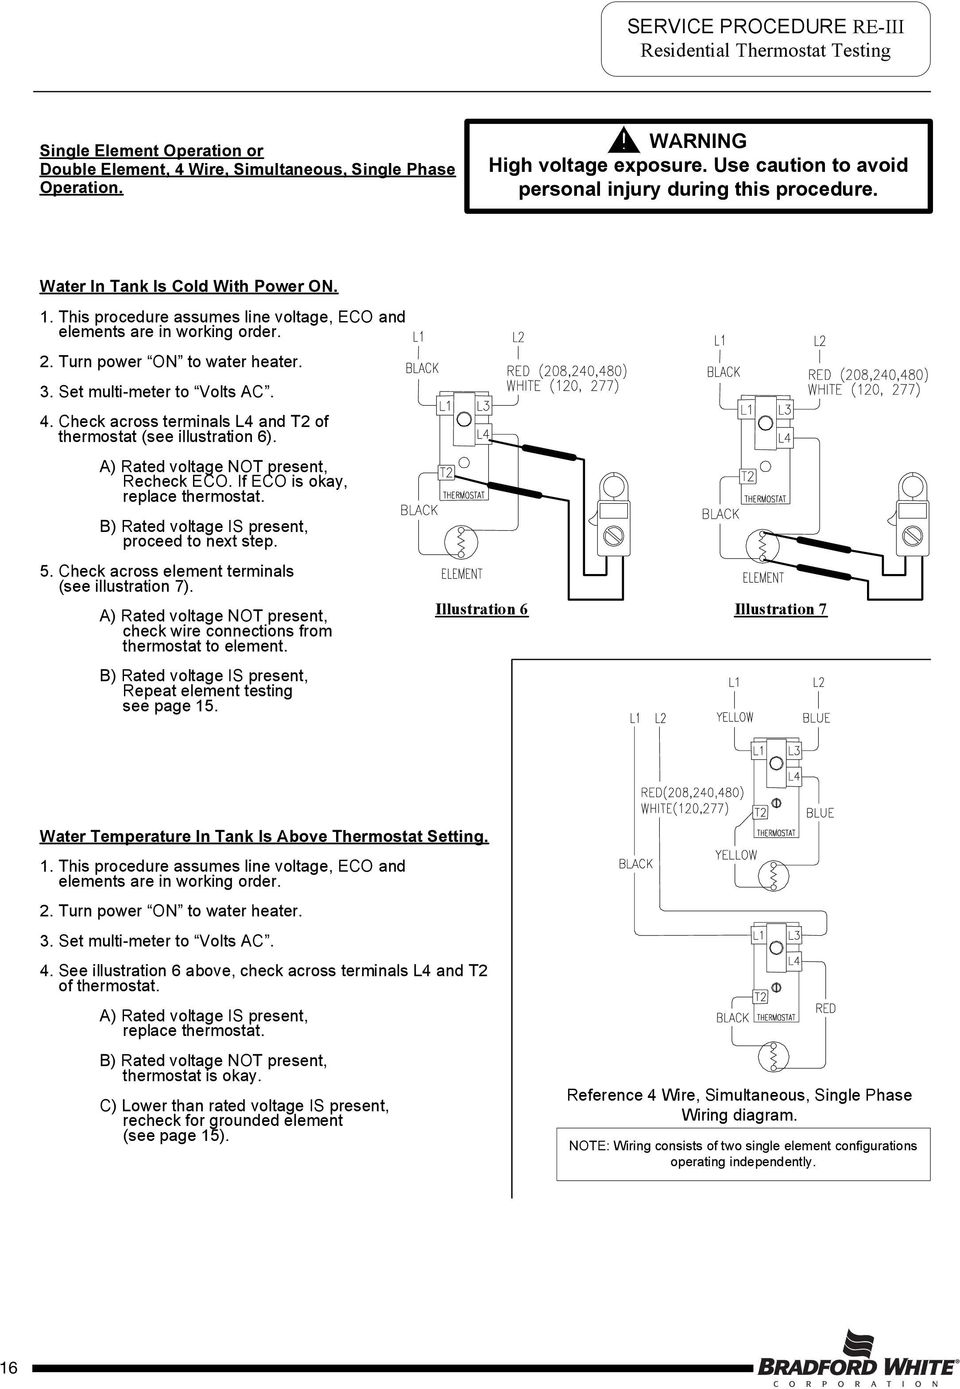 Turn power ON to water heater. 3. Set multi-meter to Volts AC. 4. Check across terminals L4 and T2 of thermostat (see illustration 6). Recheck ECO. If ECO is okay, replace thermostat.